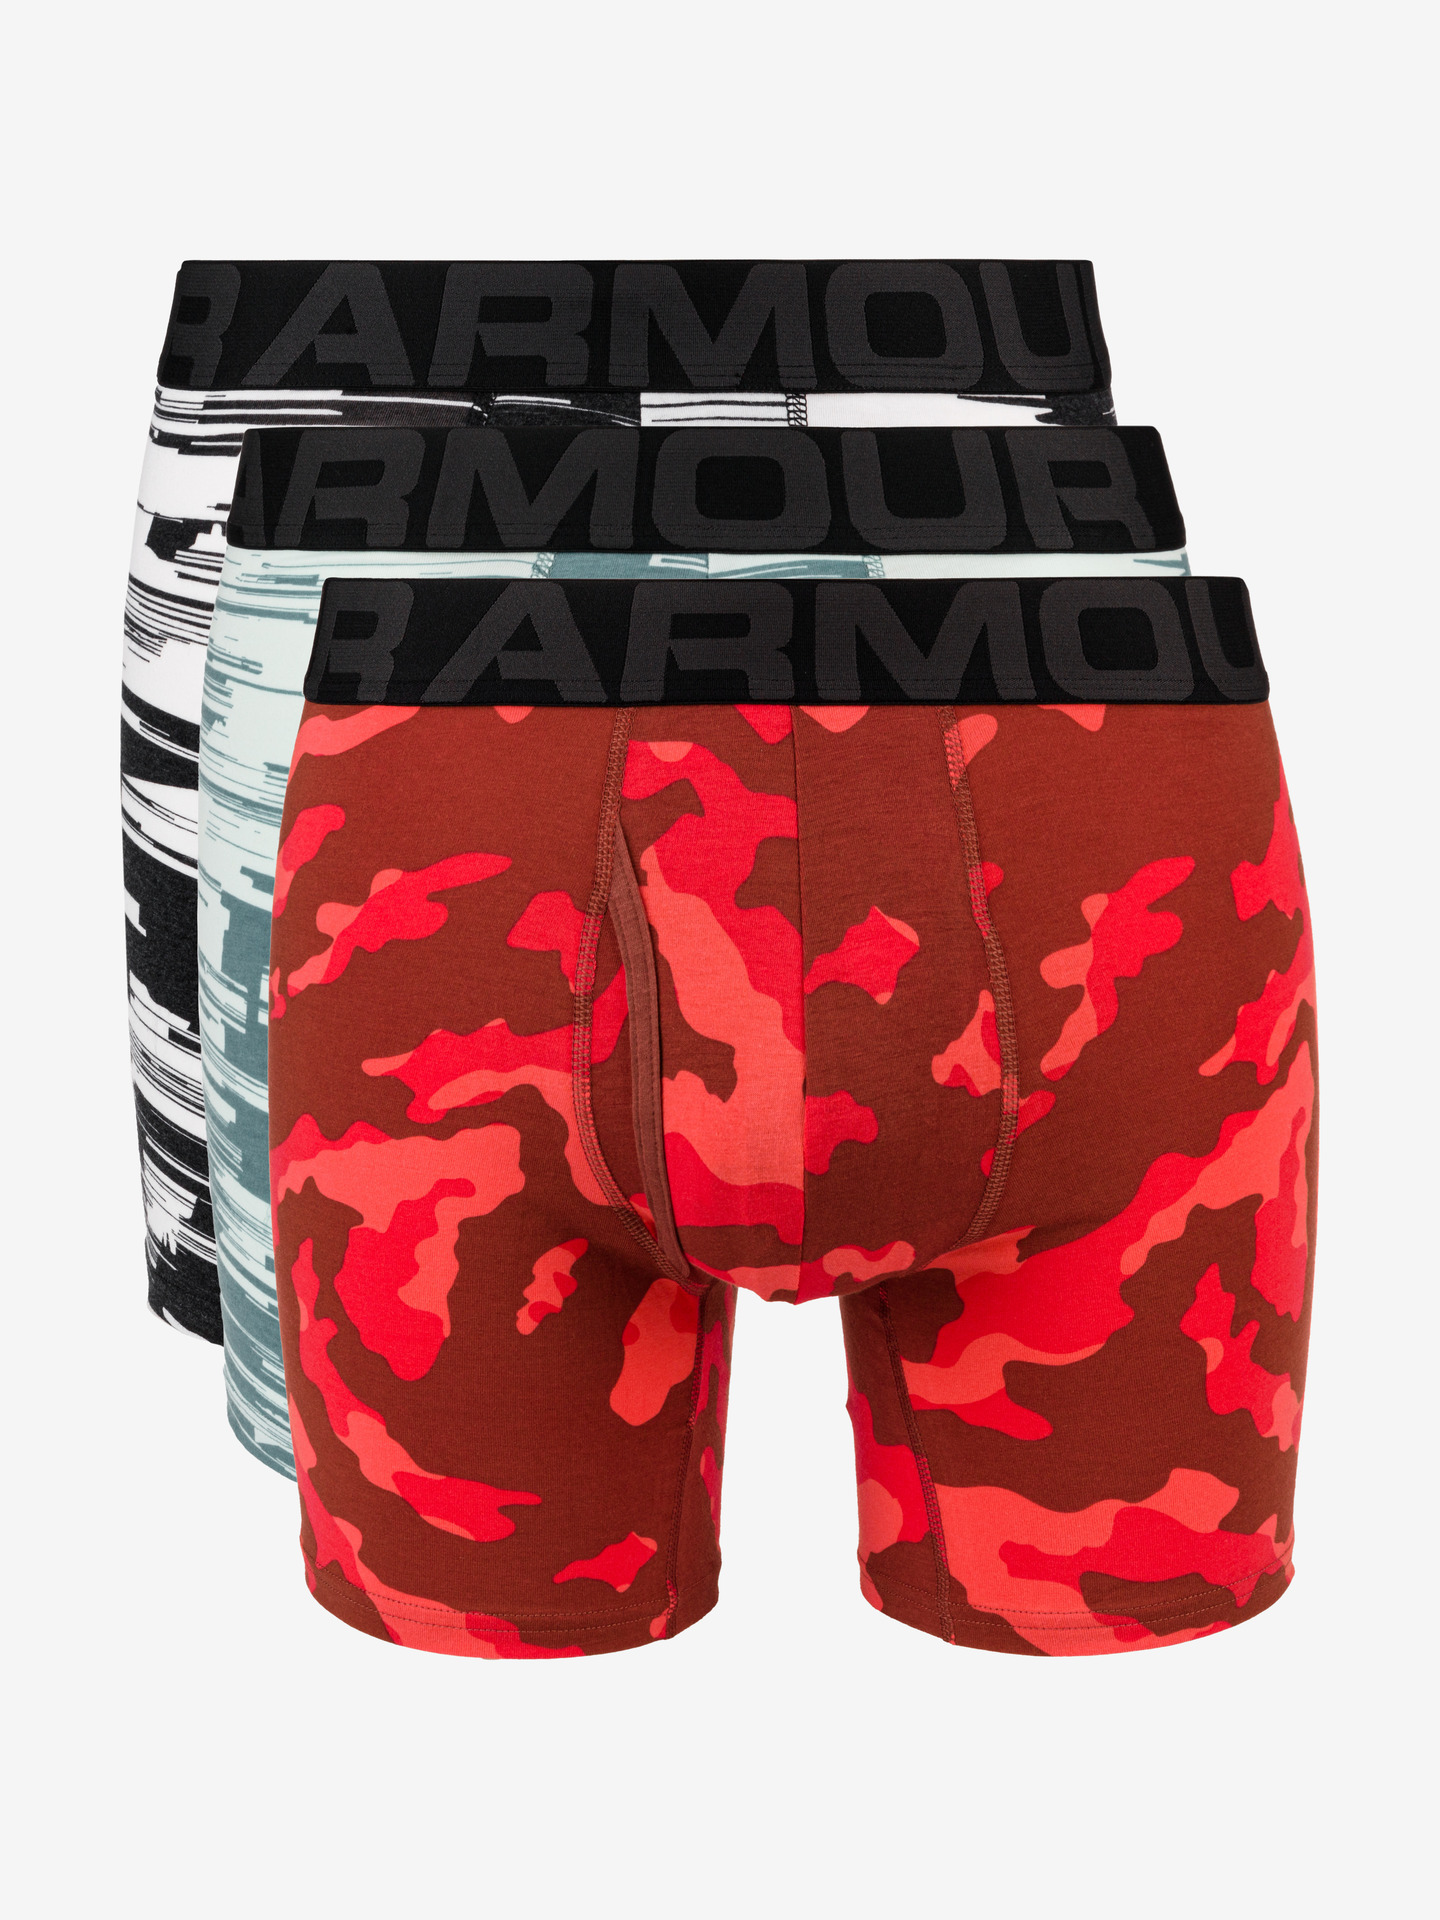 Boxerky 3 ks Under Armour Červená